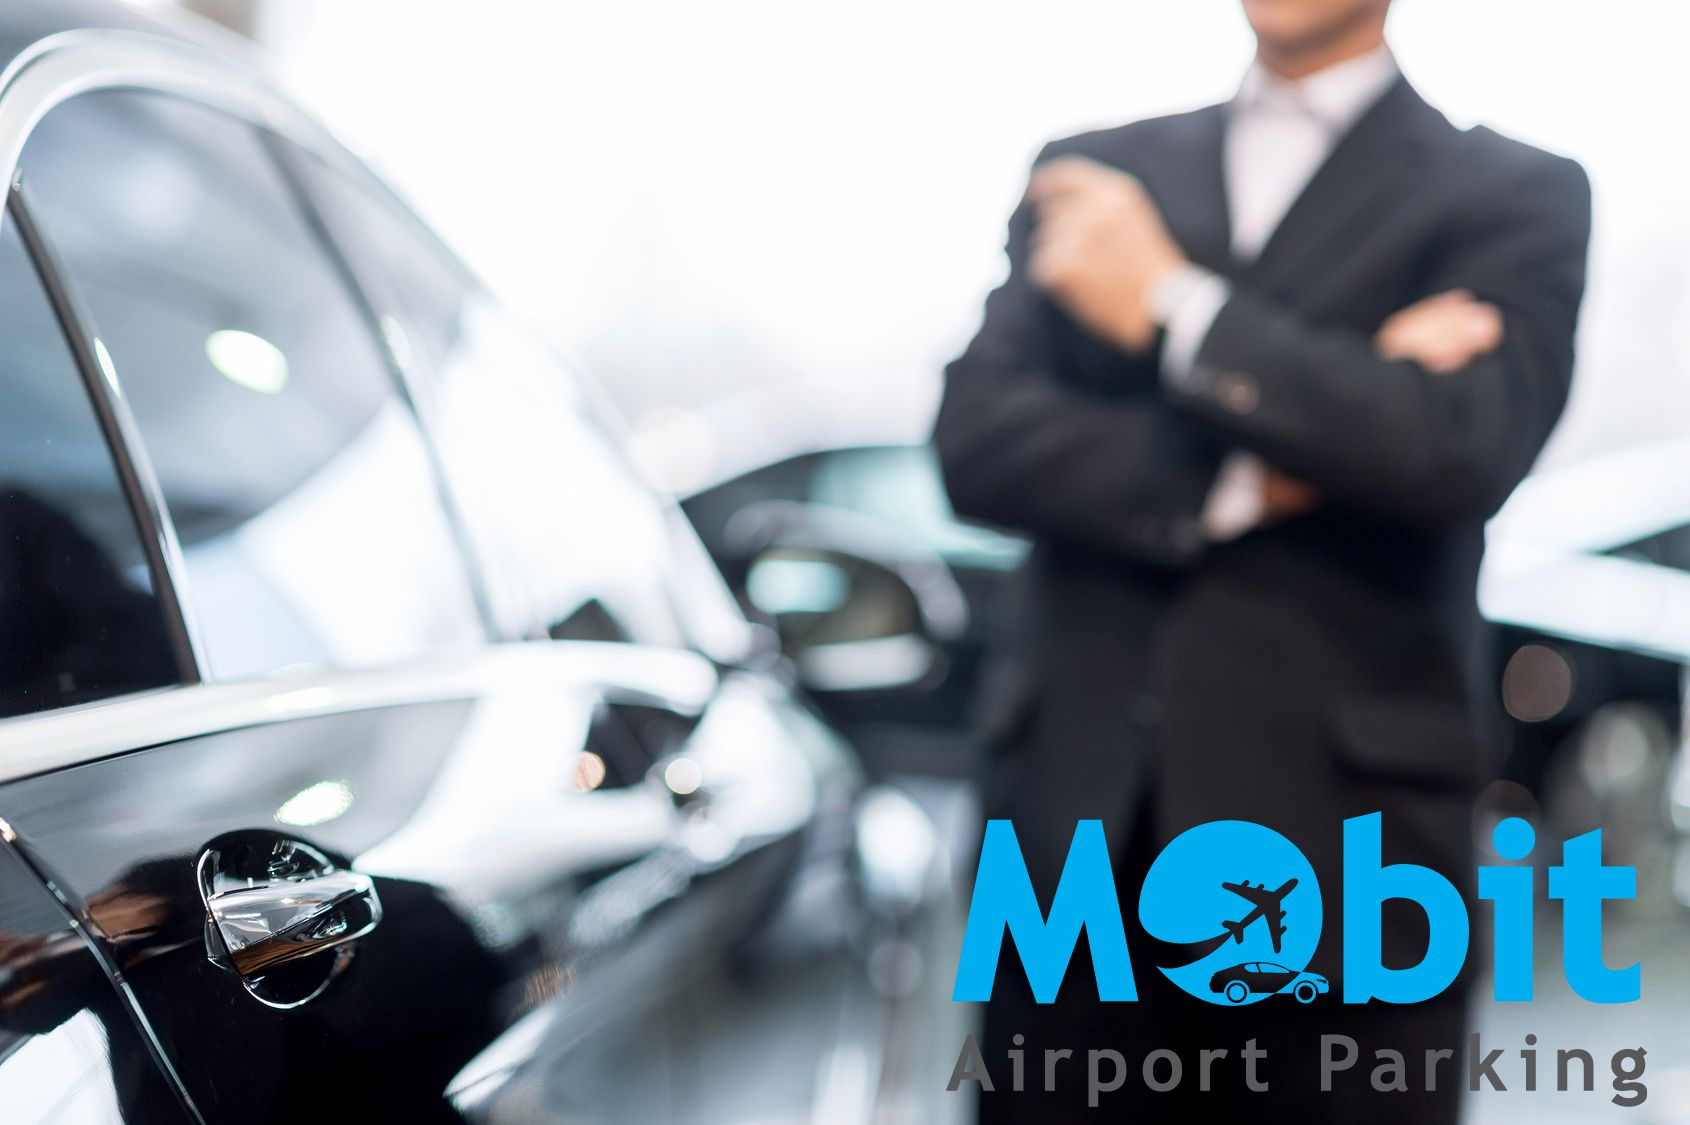 Beat car parking service is in your reach airport parking beat car parking service is in your reach kristyandbryce Image collections